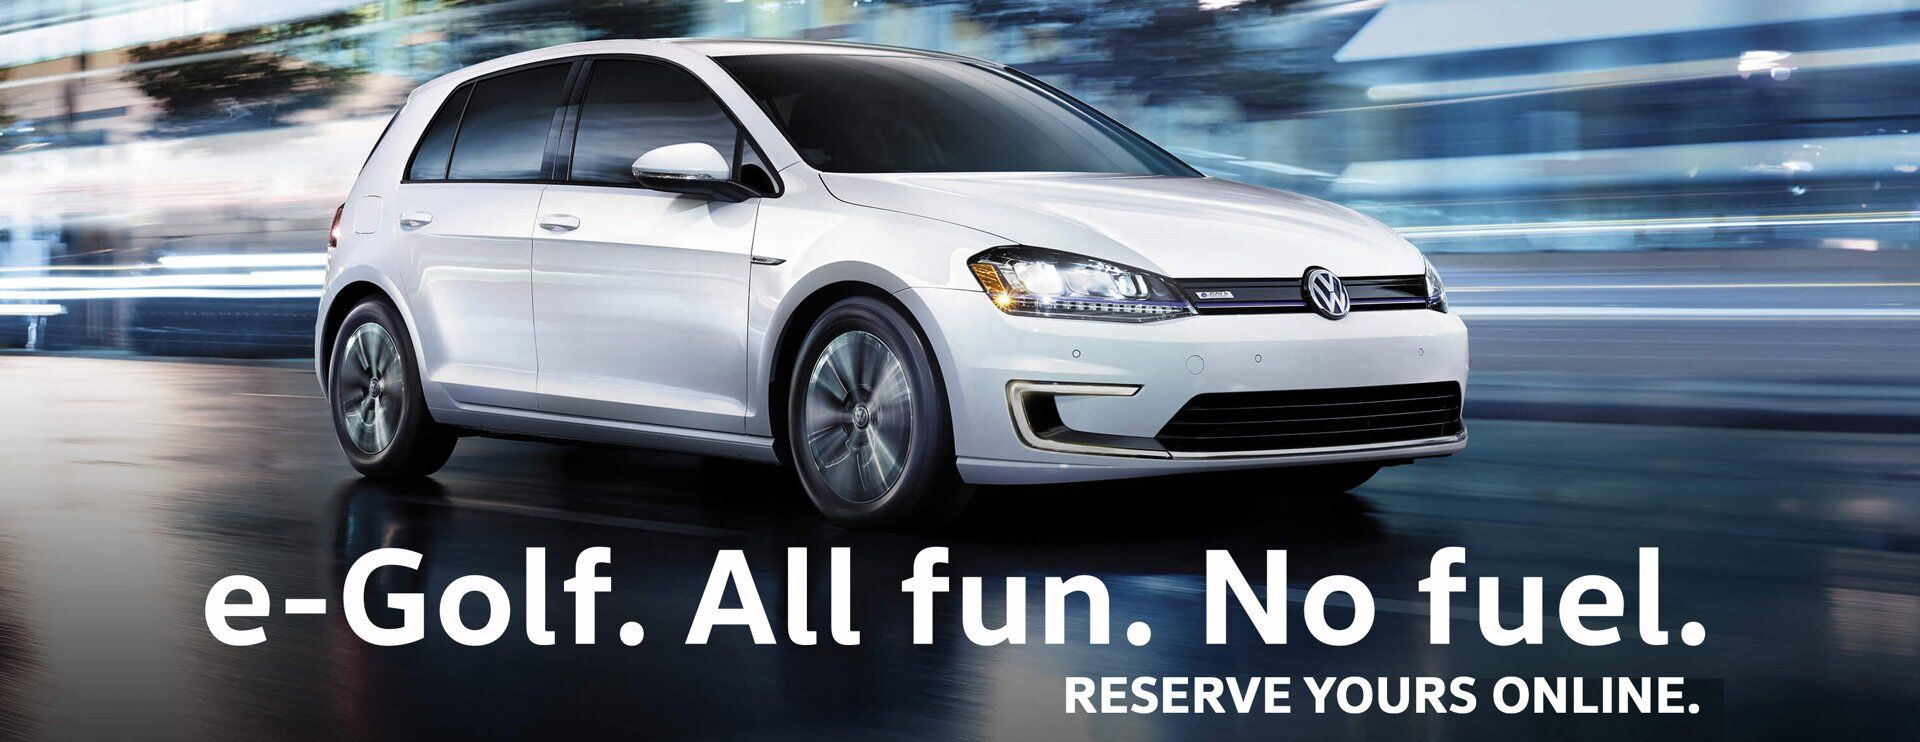 reserve your e-golf at Clarkdale Volkswagen